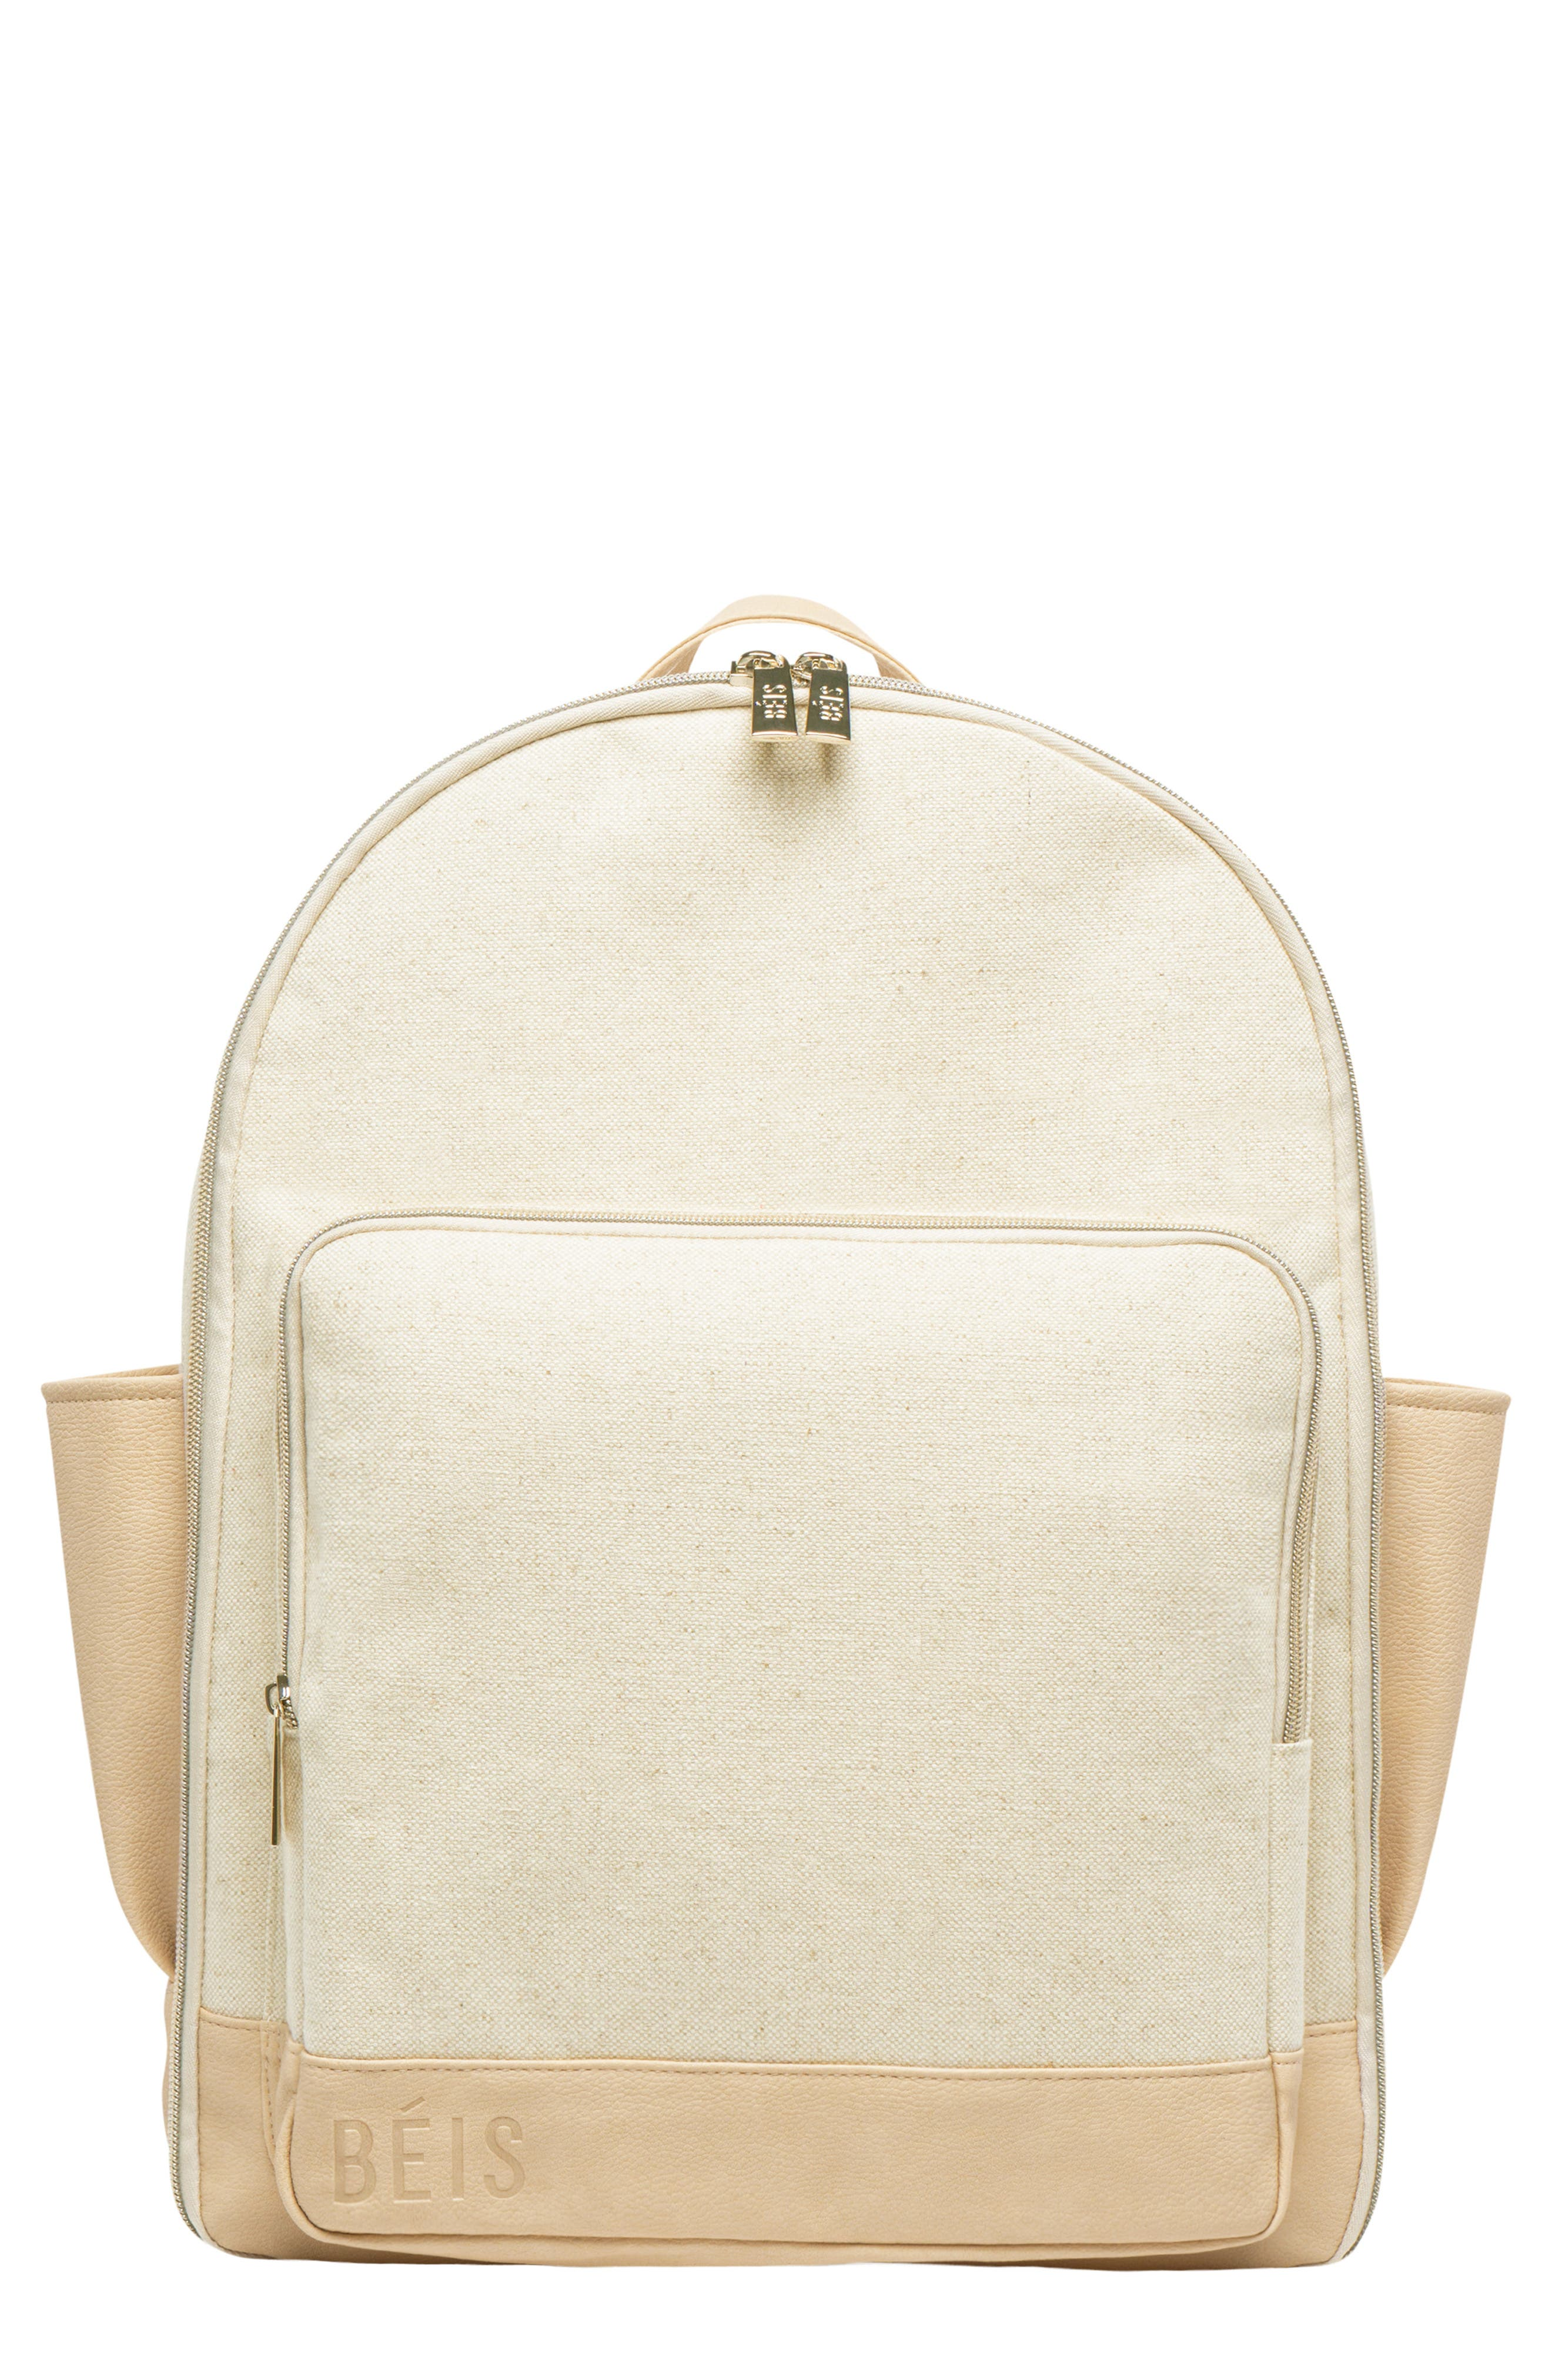 Travel Multi Function Travel Backpack,                             Main thumbnail 1, color,                             BEIGE